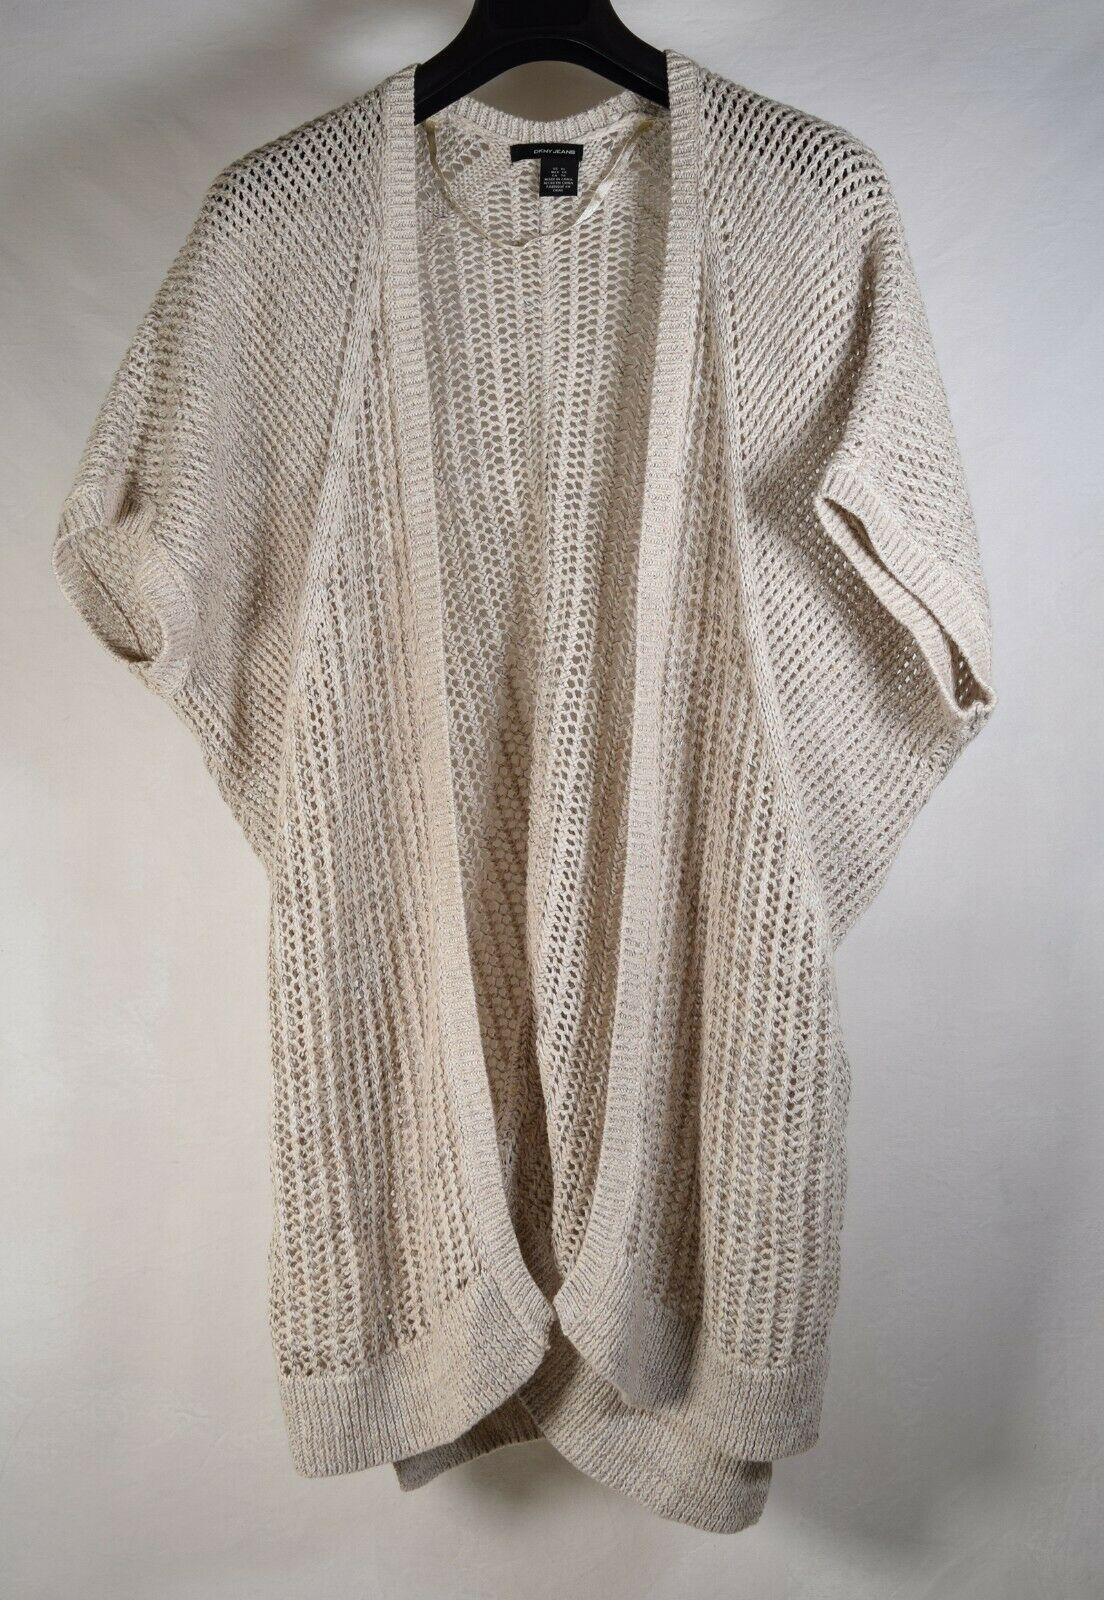 Primary image for DKNY Jeans Womens Knit SS Sweater Cardigan Beige XL